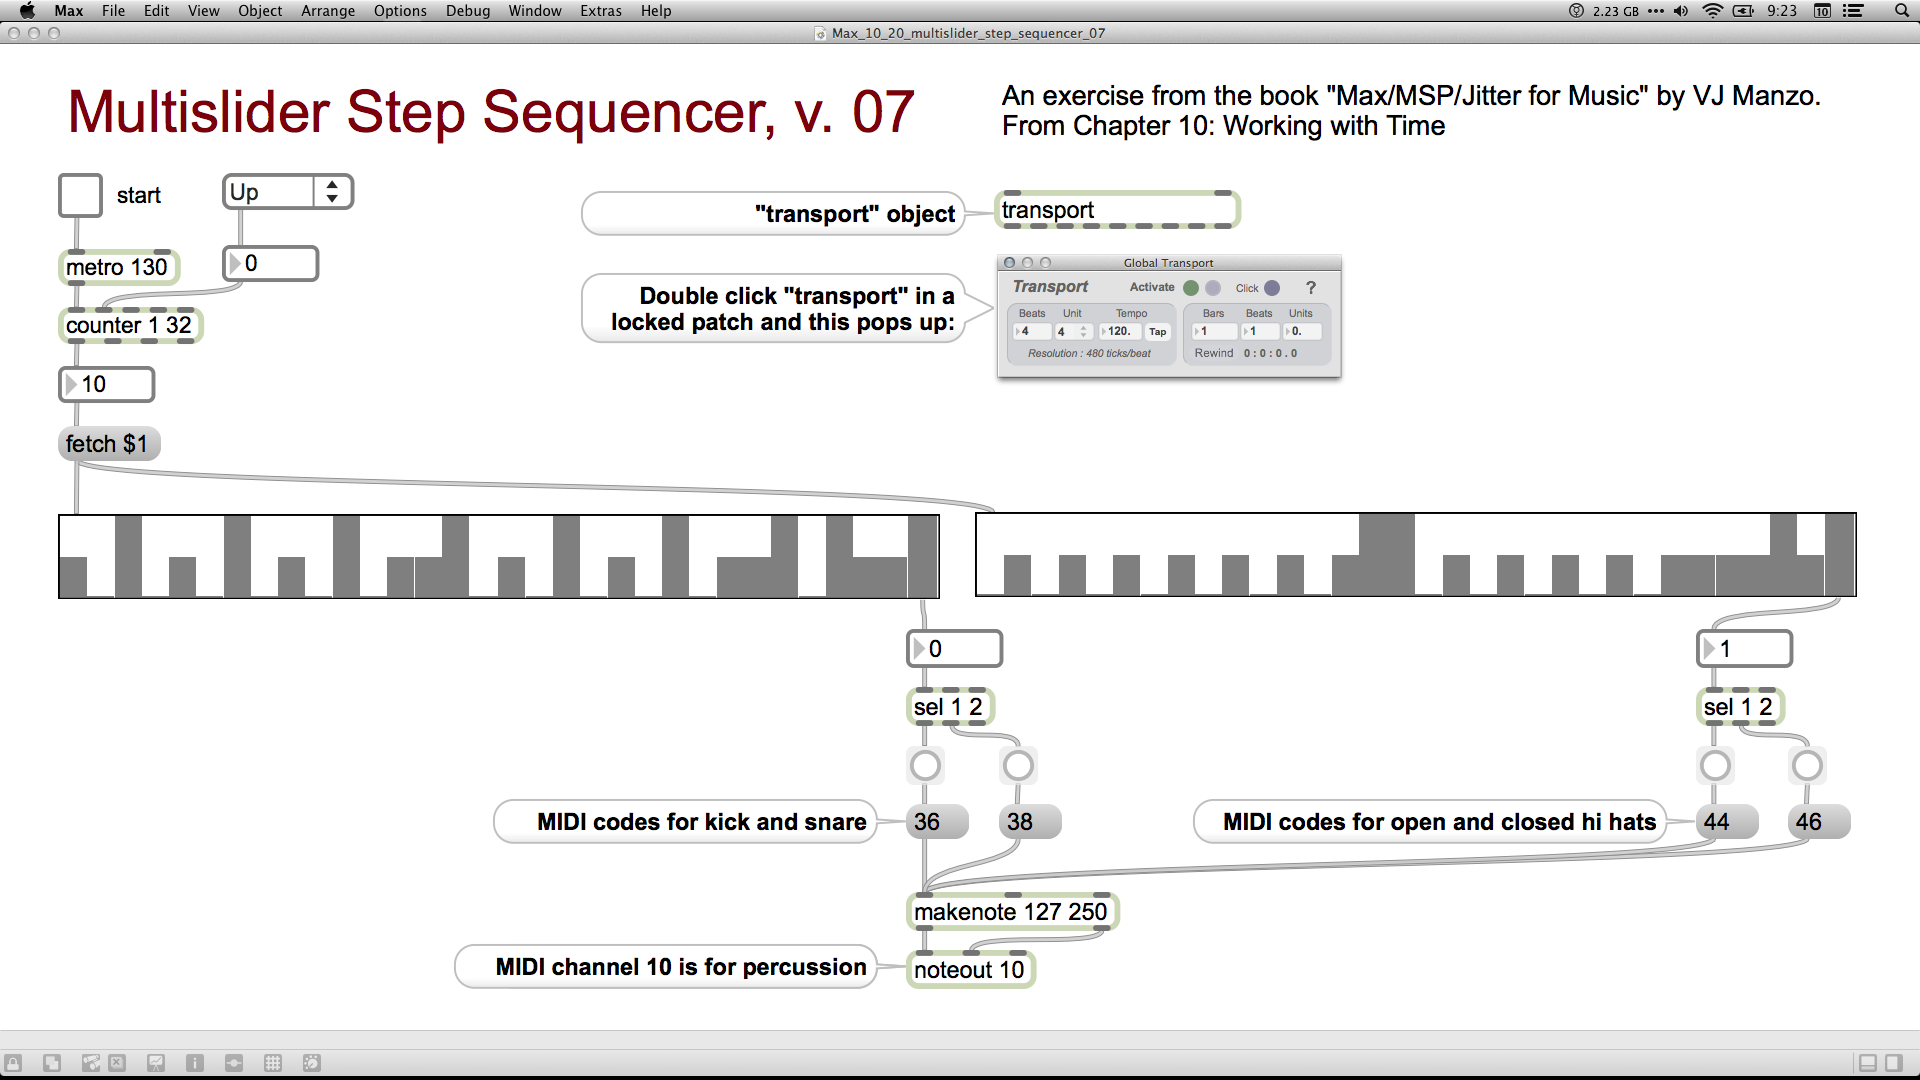 max_10_20_multislider_step_sequencer_07.png